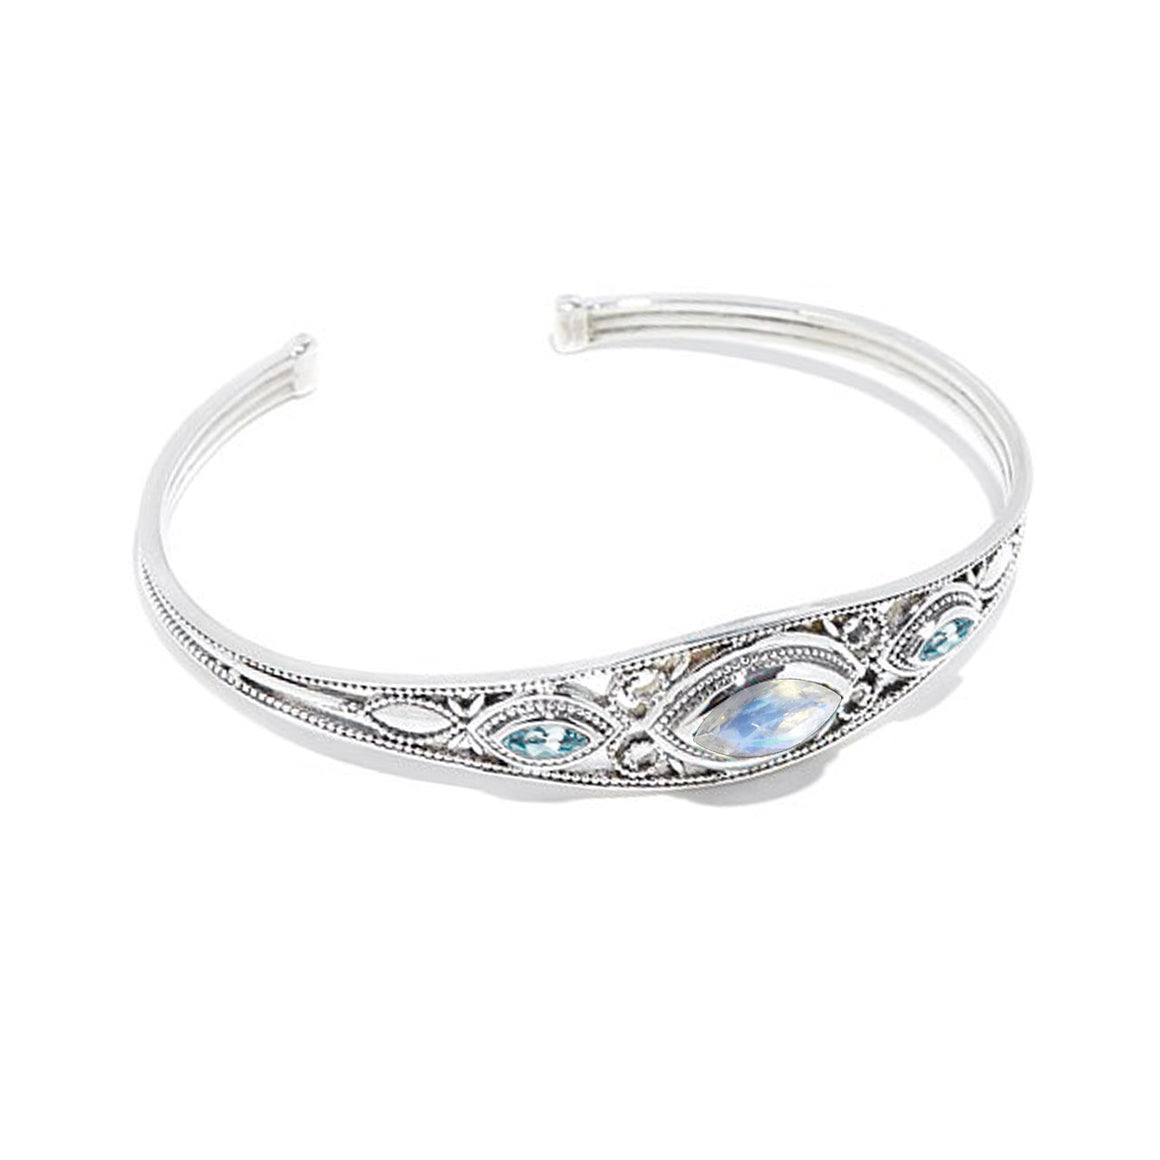 Faceted Rainbow Moonstone and Blue Topaz Cuff Bracelet